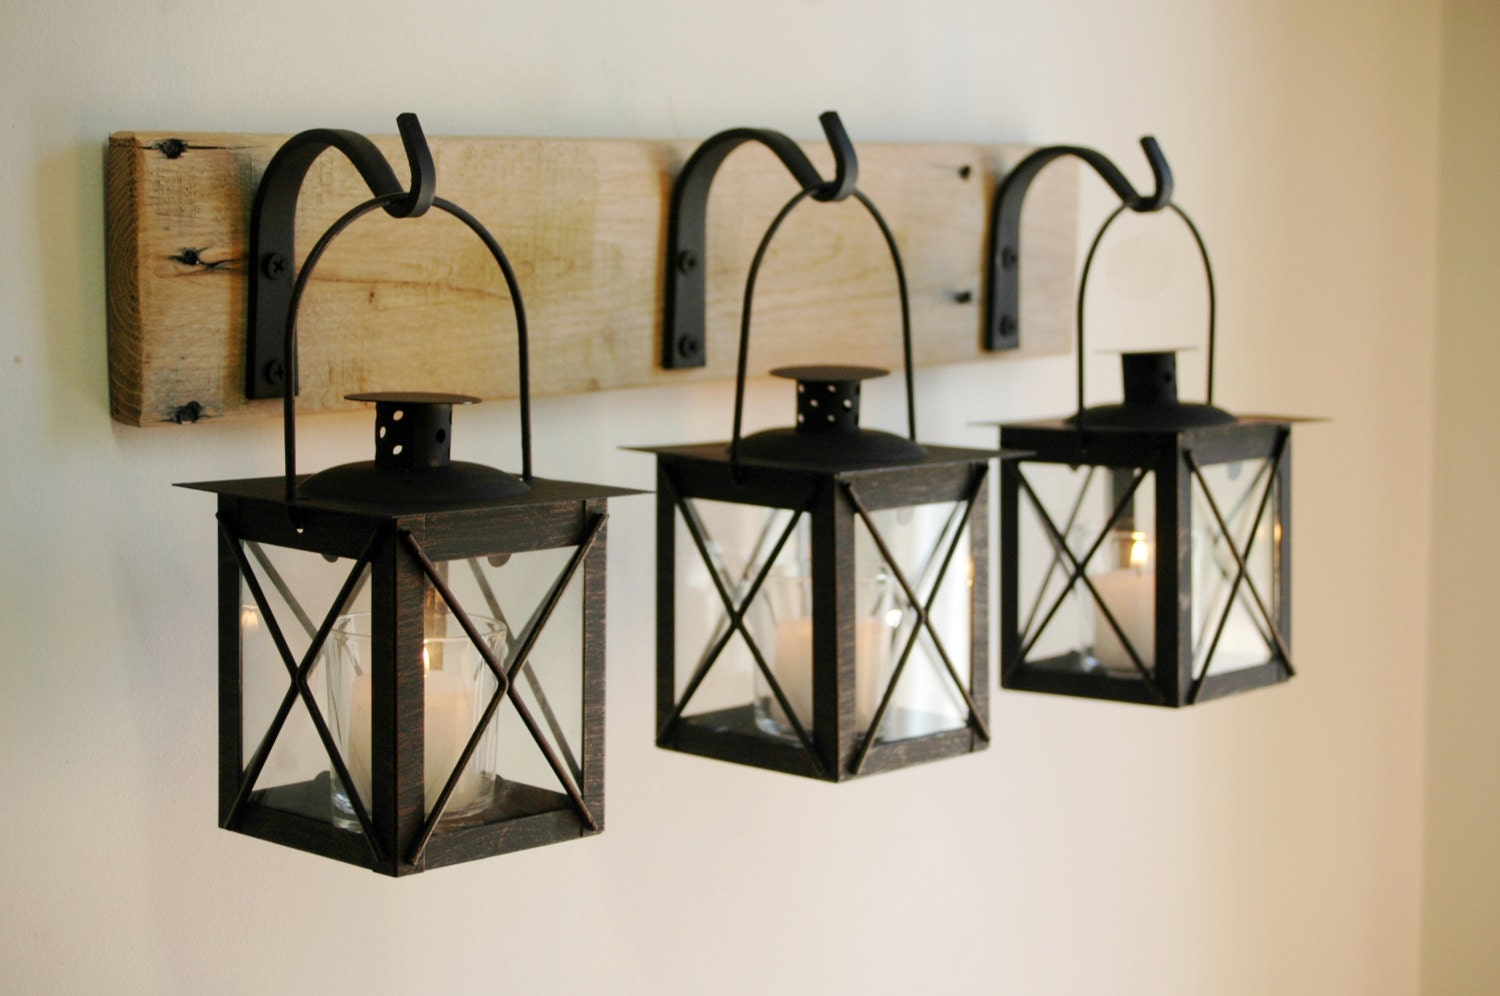 Black lantern trio wall decor home decor rustic decor for Northwoods decor